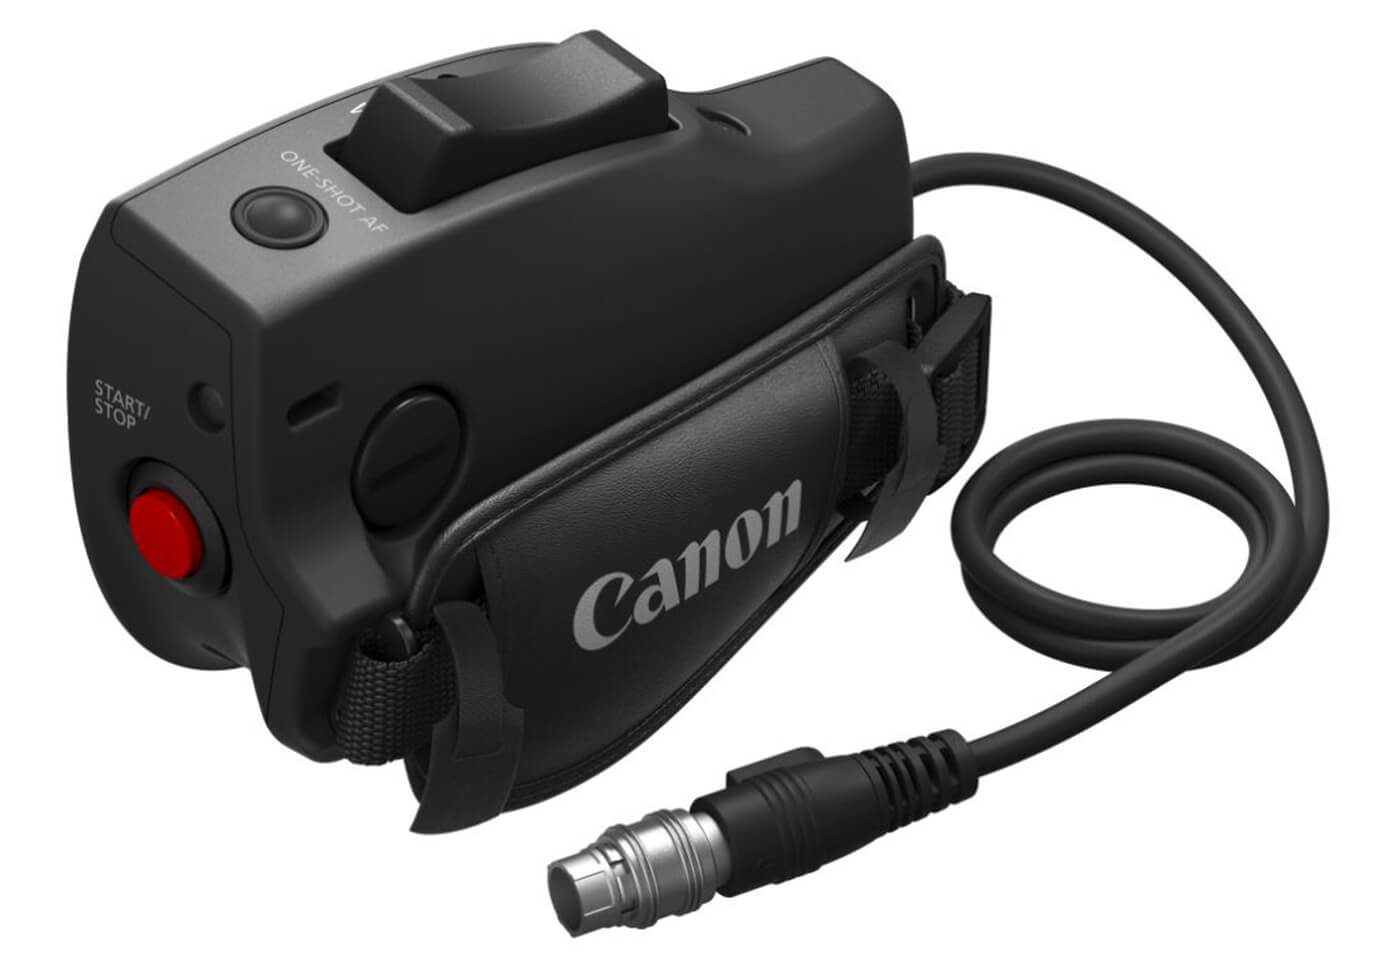 Canon's Servo drive controls zoom, focus and iris, while the optional ZSG-10 grip allows shoulder shooting, smooth remote activation and one-shot AF